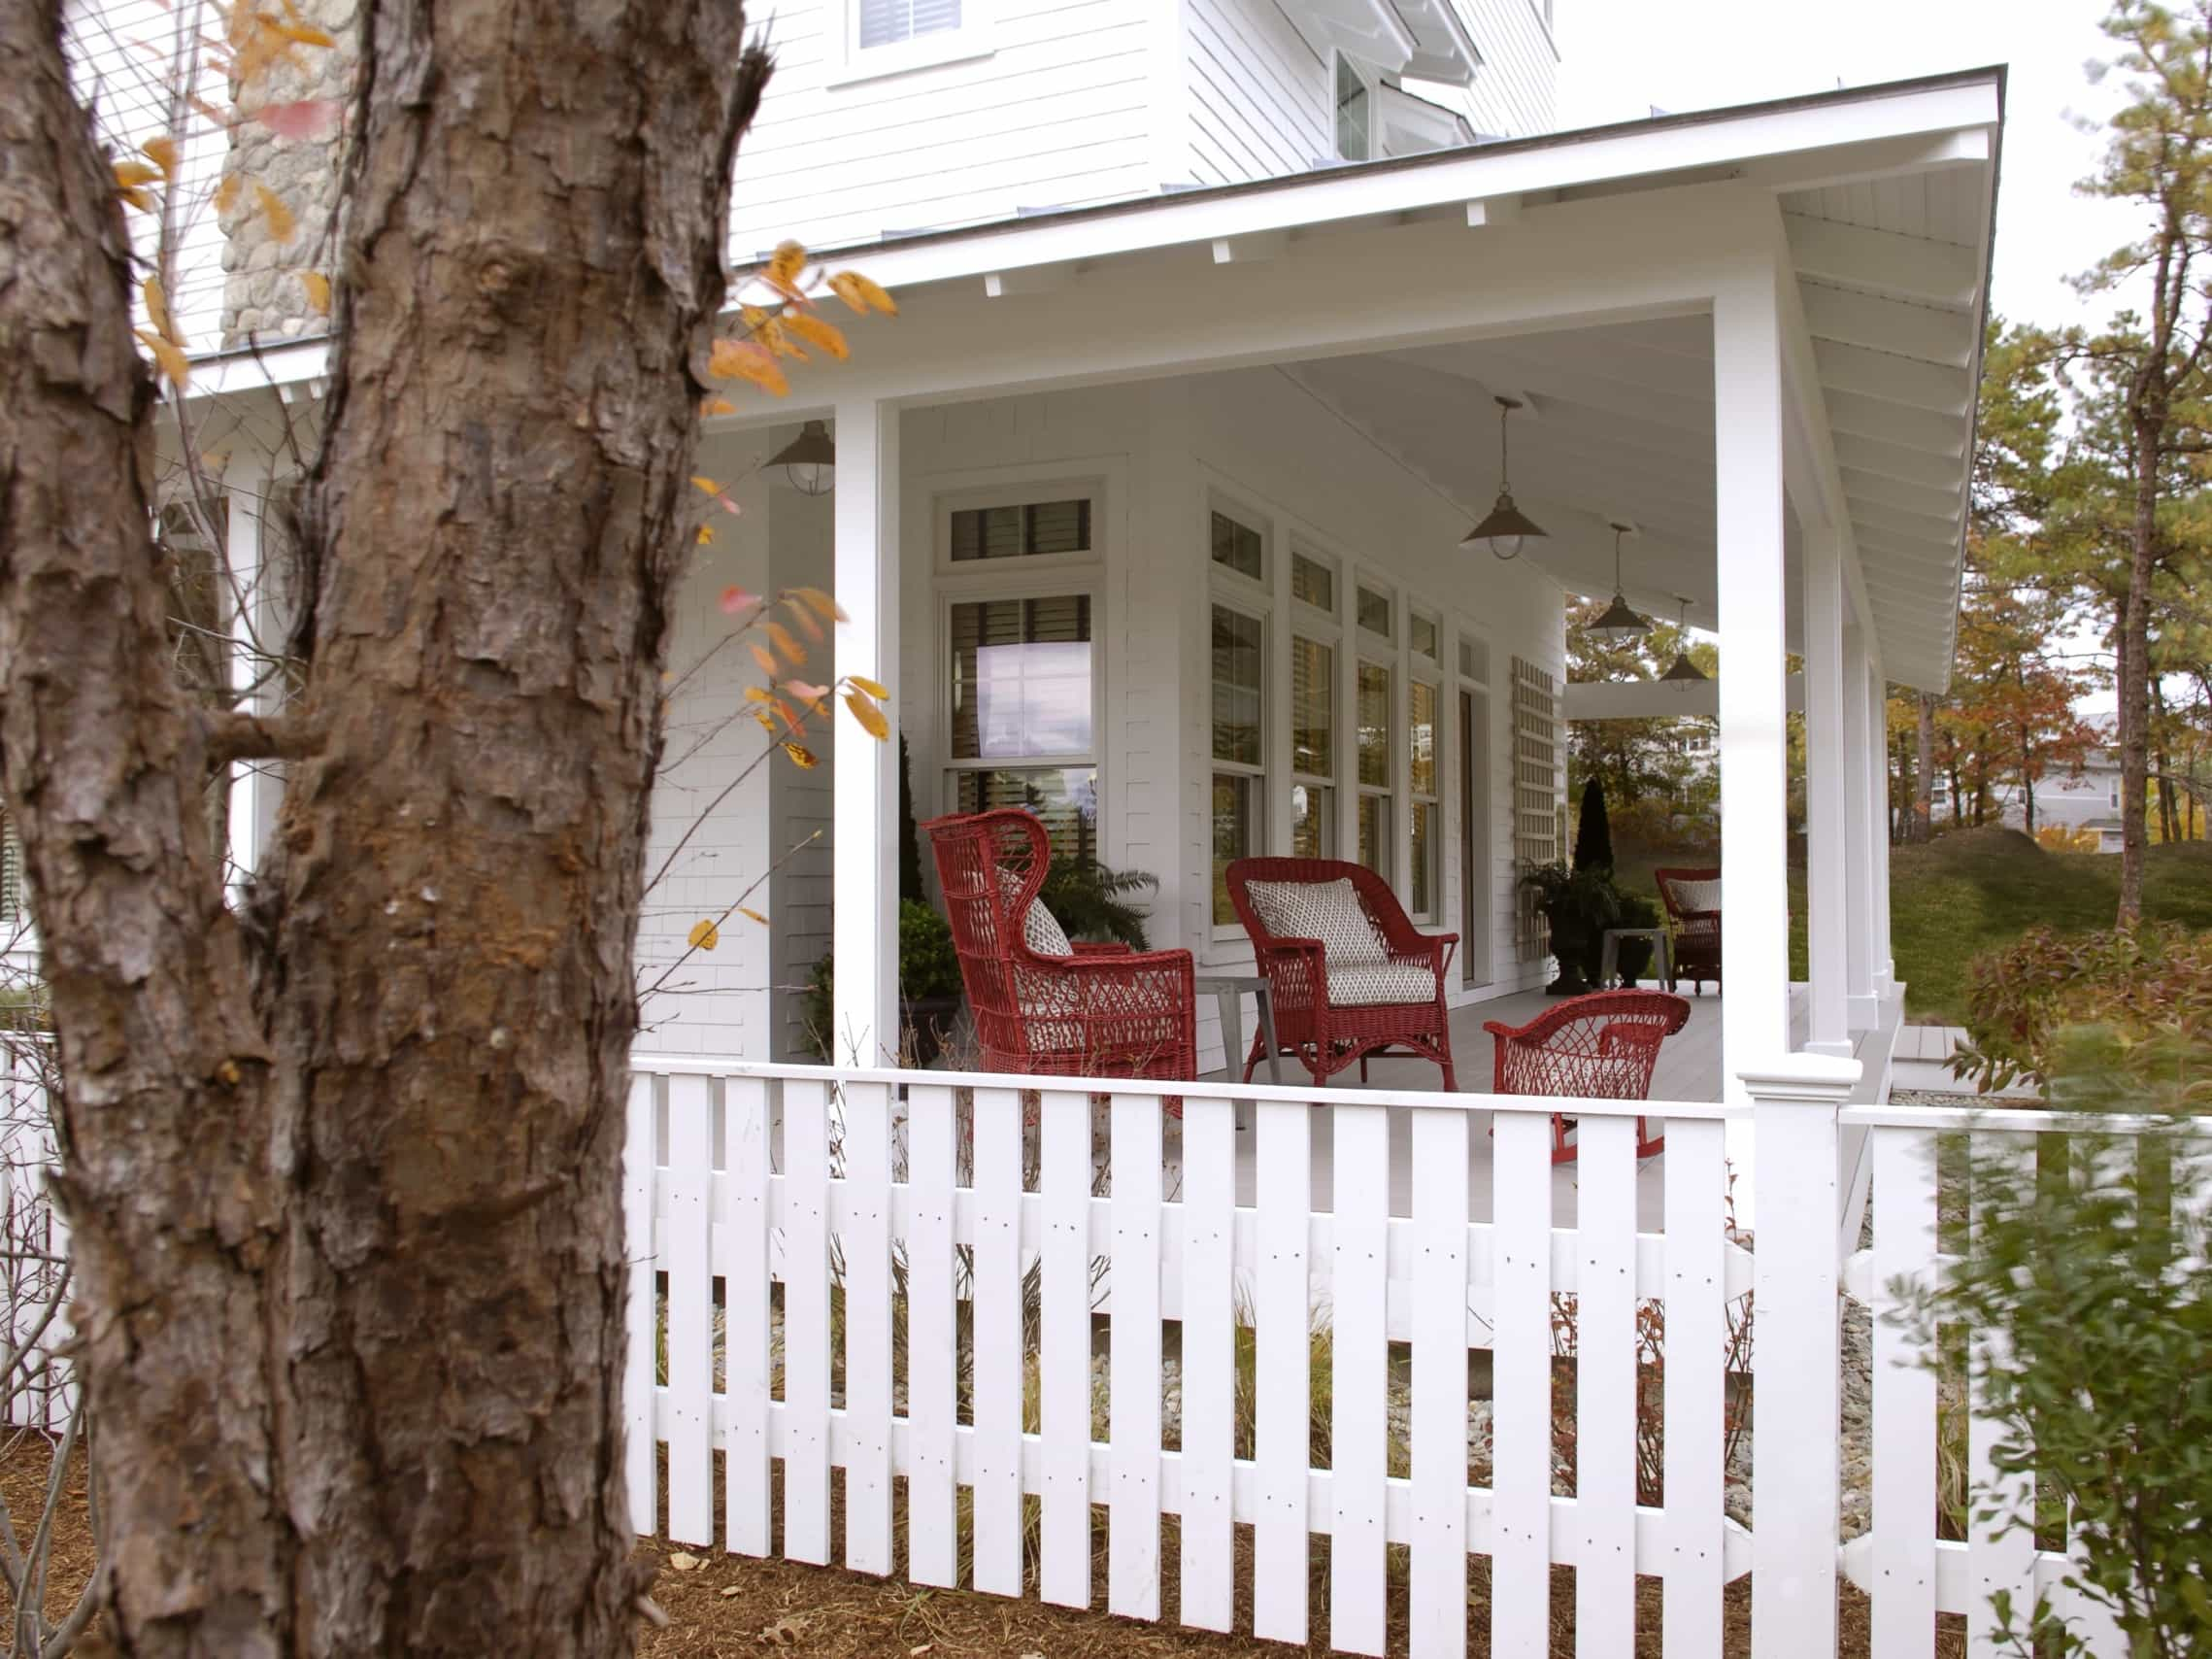 Featured Image of Front Terrace Pillars For White Colonial House With Covered Porch